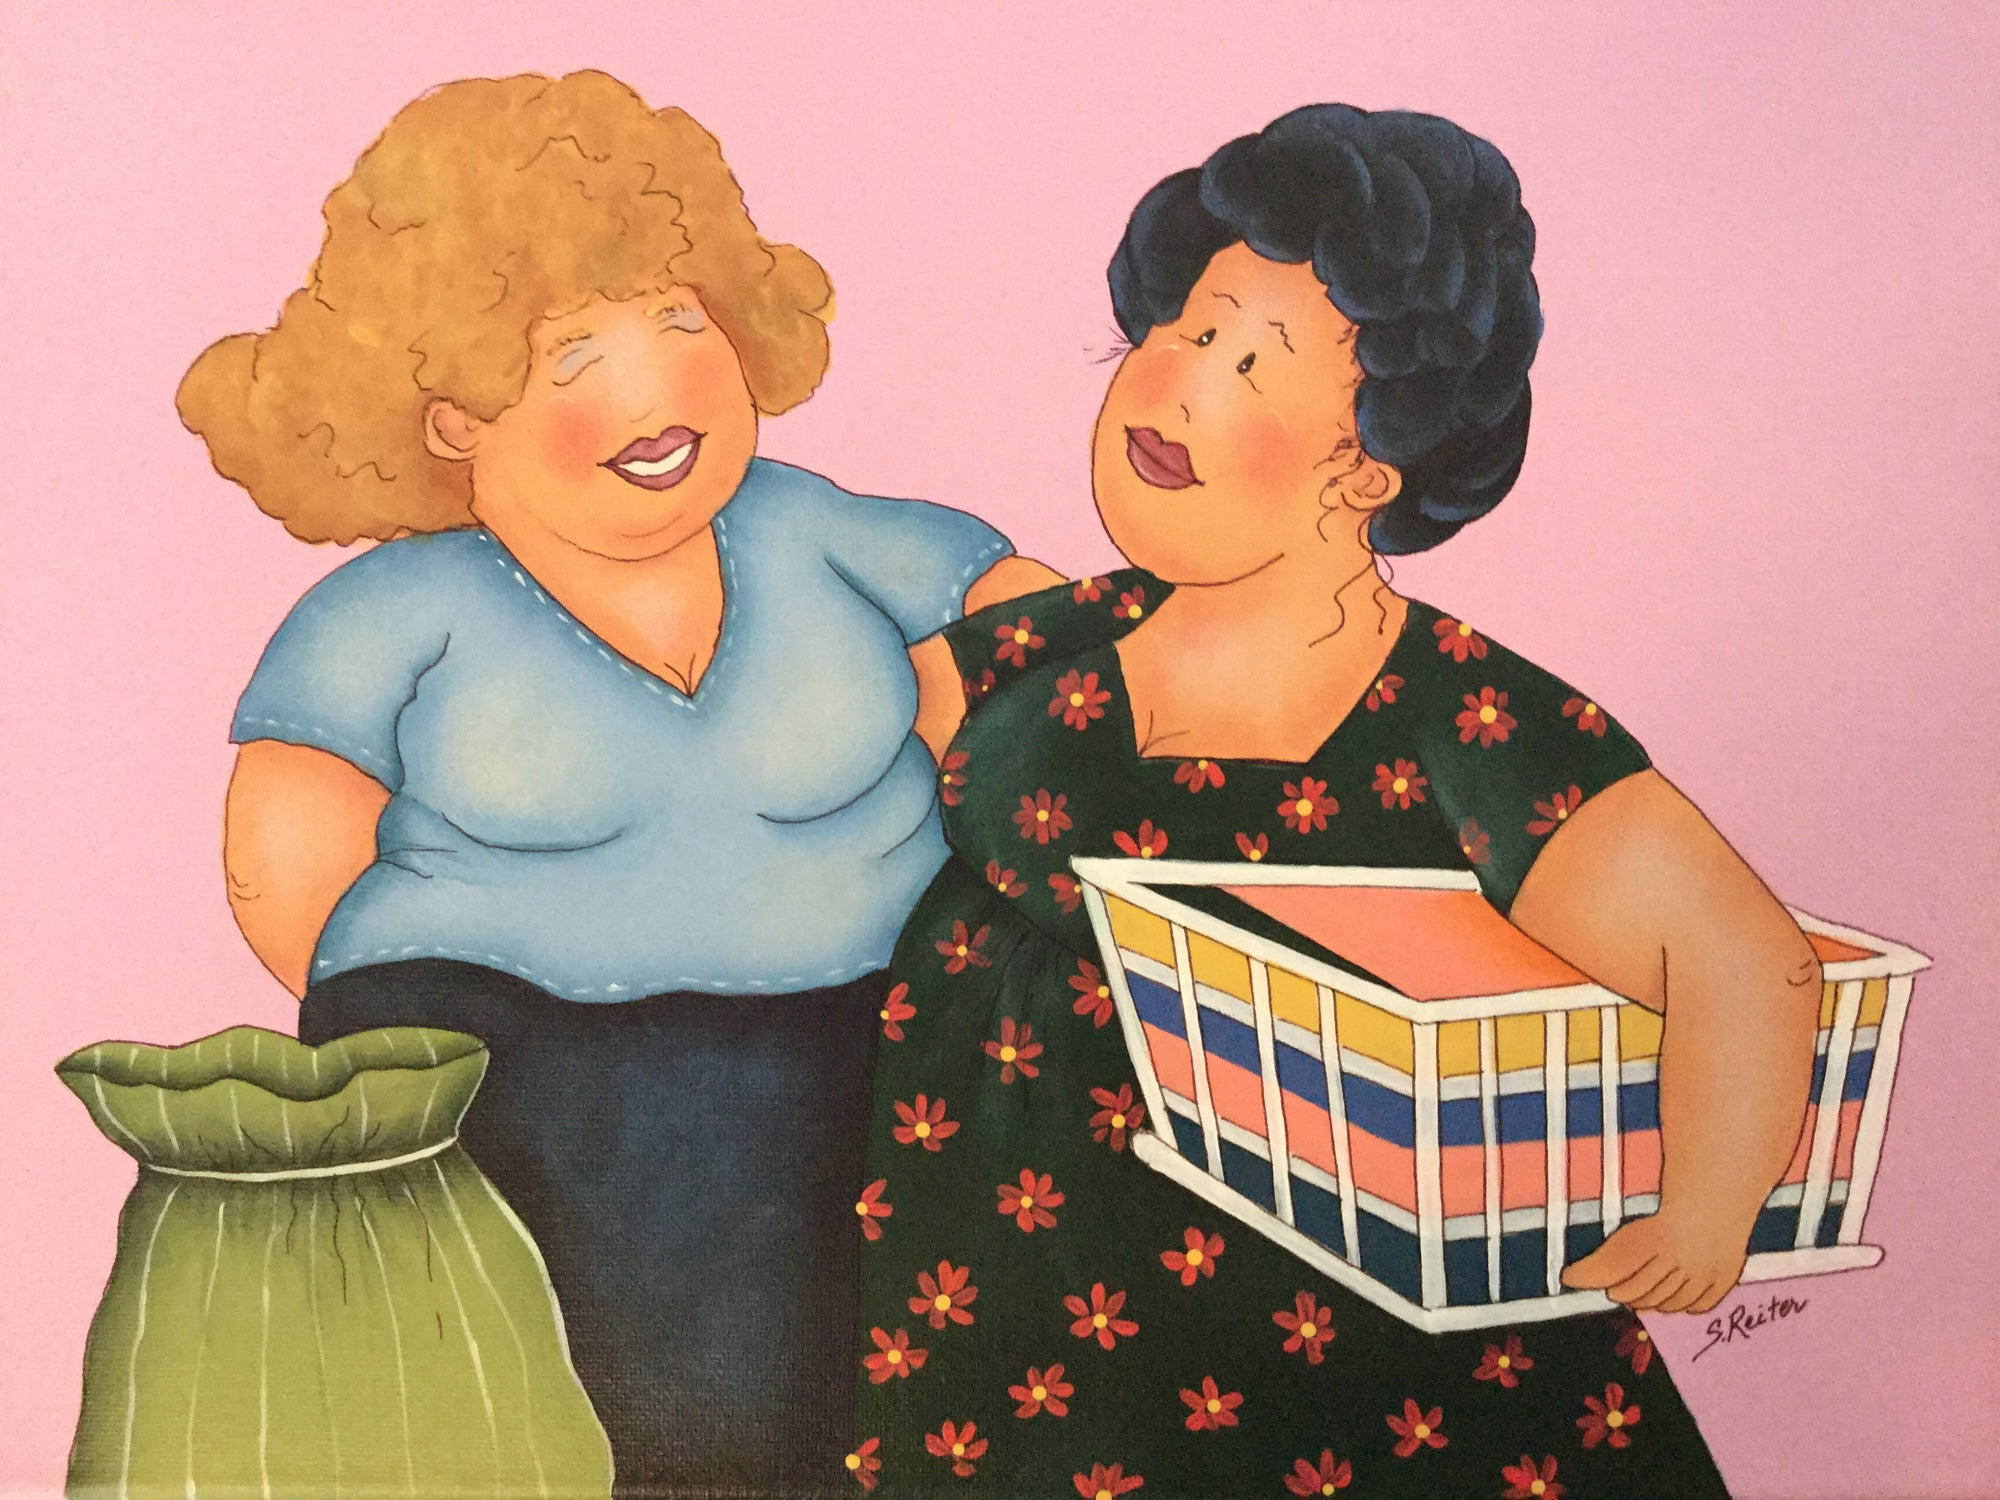 A Painting of Two Ladies Doing Laundry and Laughing. - Pink Background